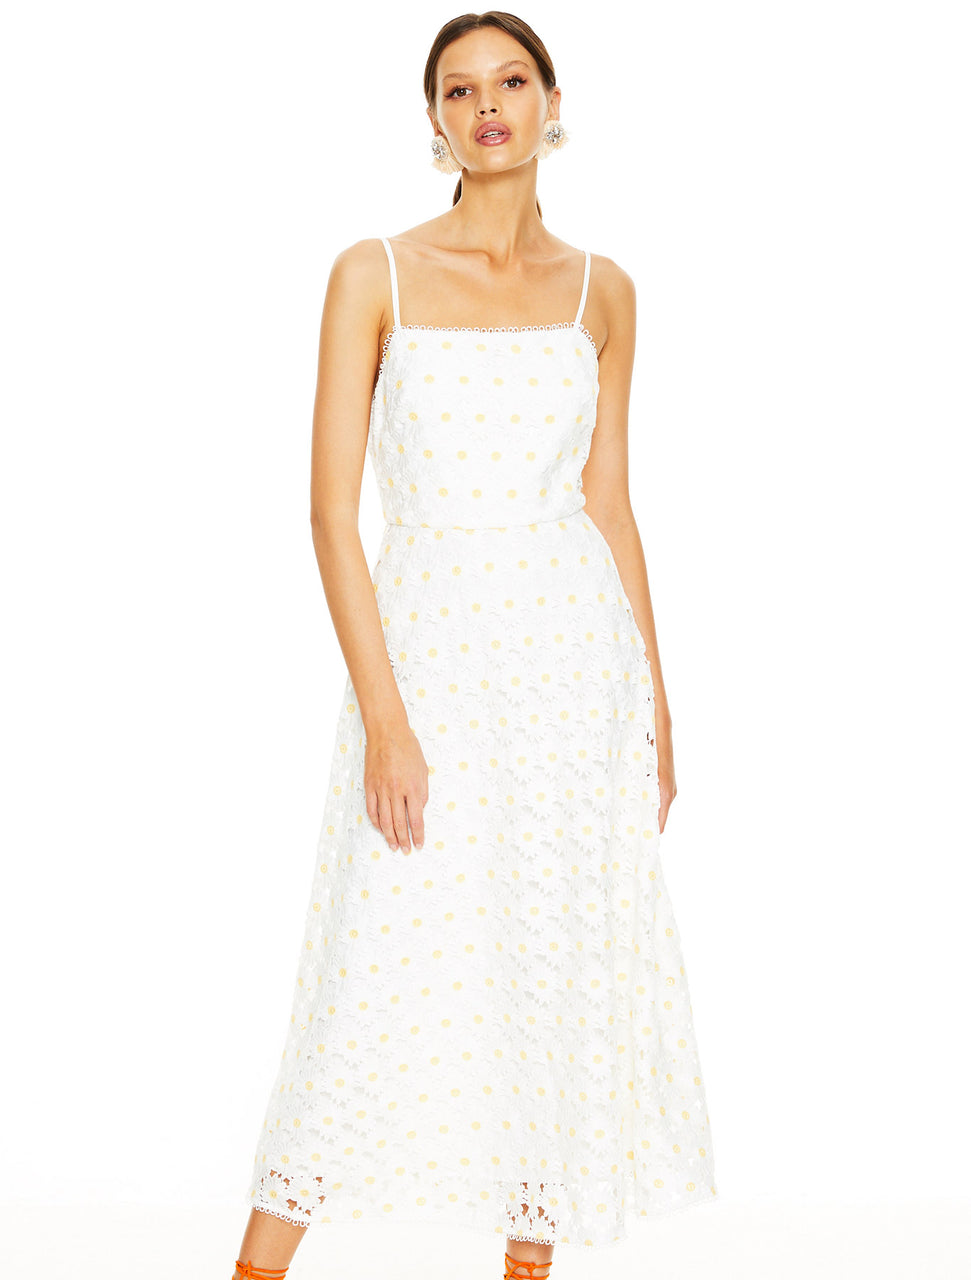 Talulah Spritzer Midi Dress - Daisy Crochet